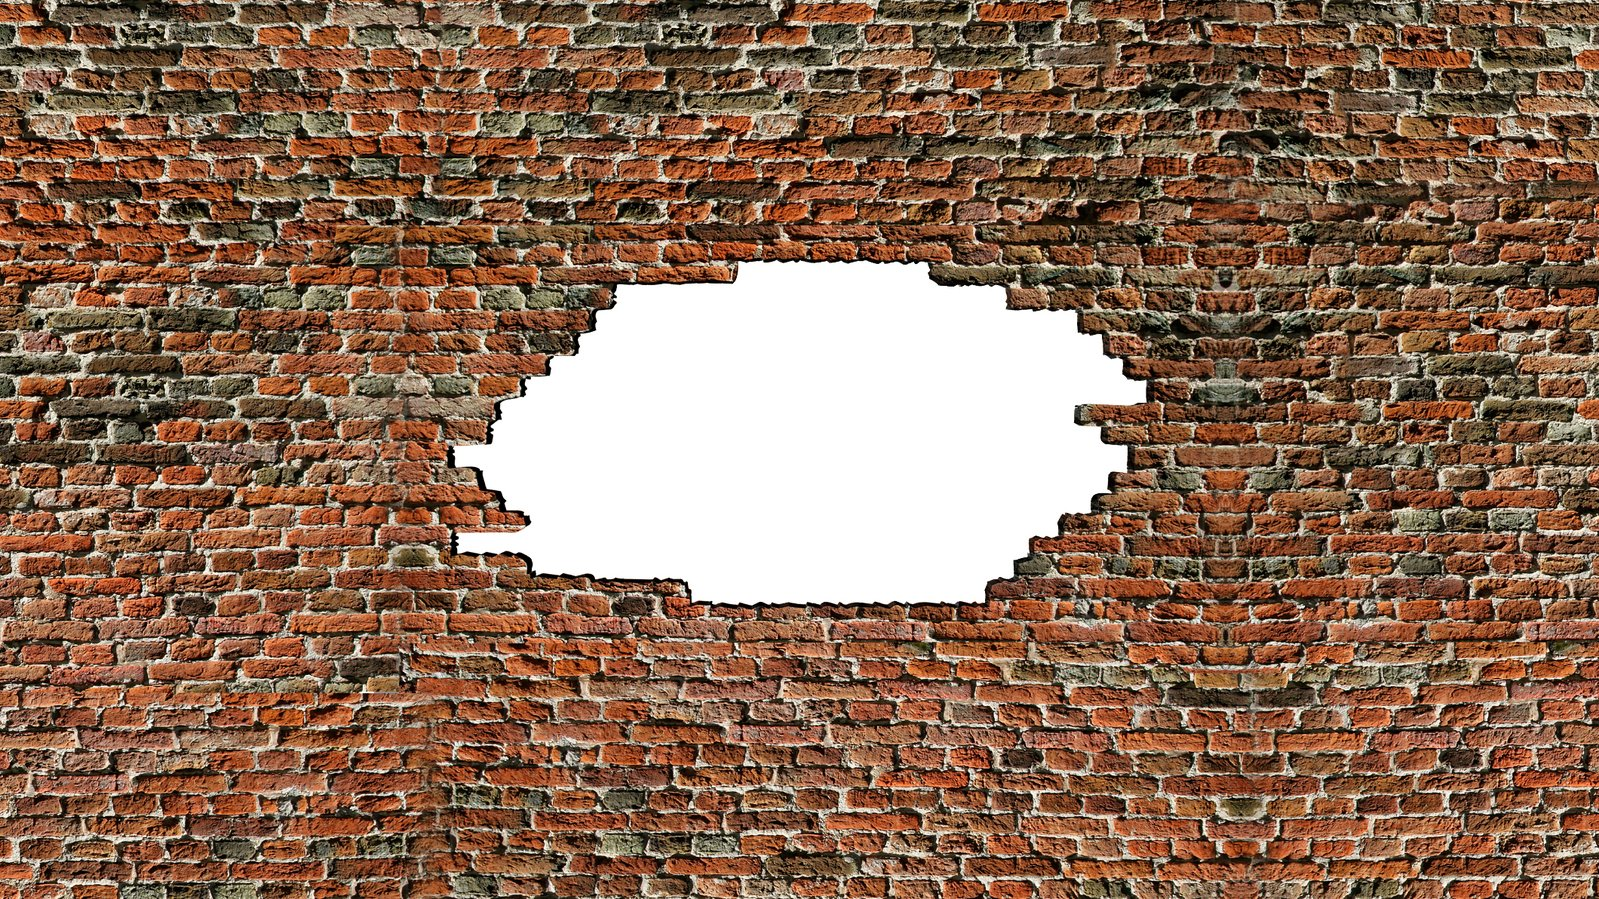 Free Brick Wall Hole 1 Stock Photo - FreeImages.com